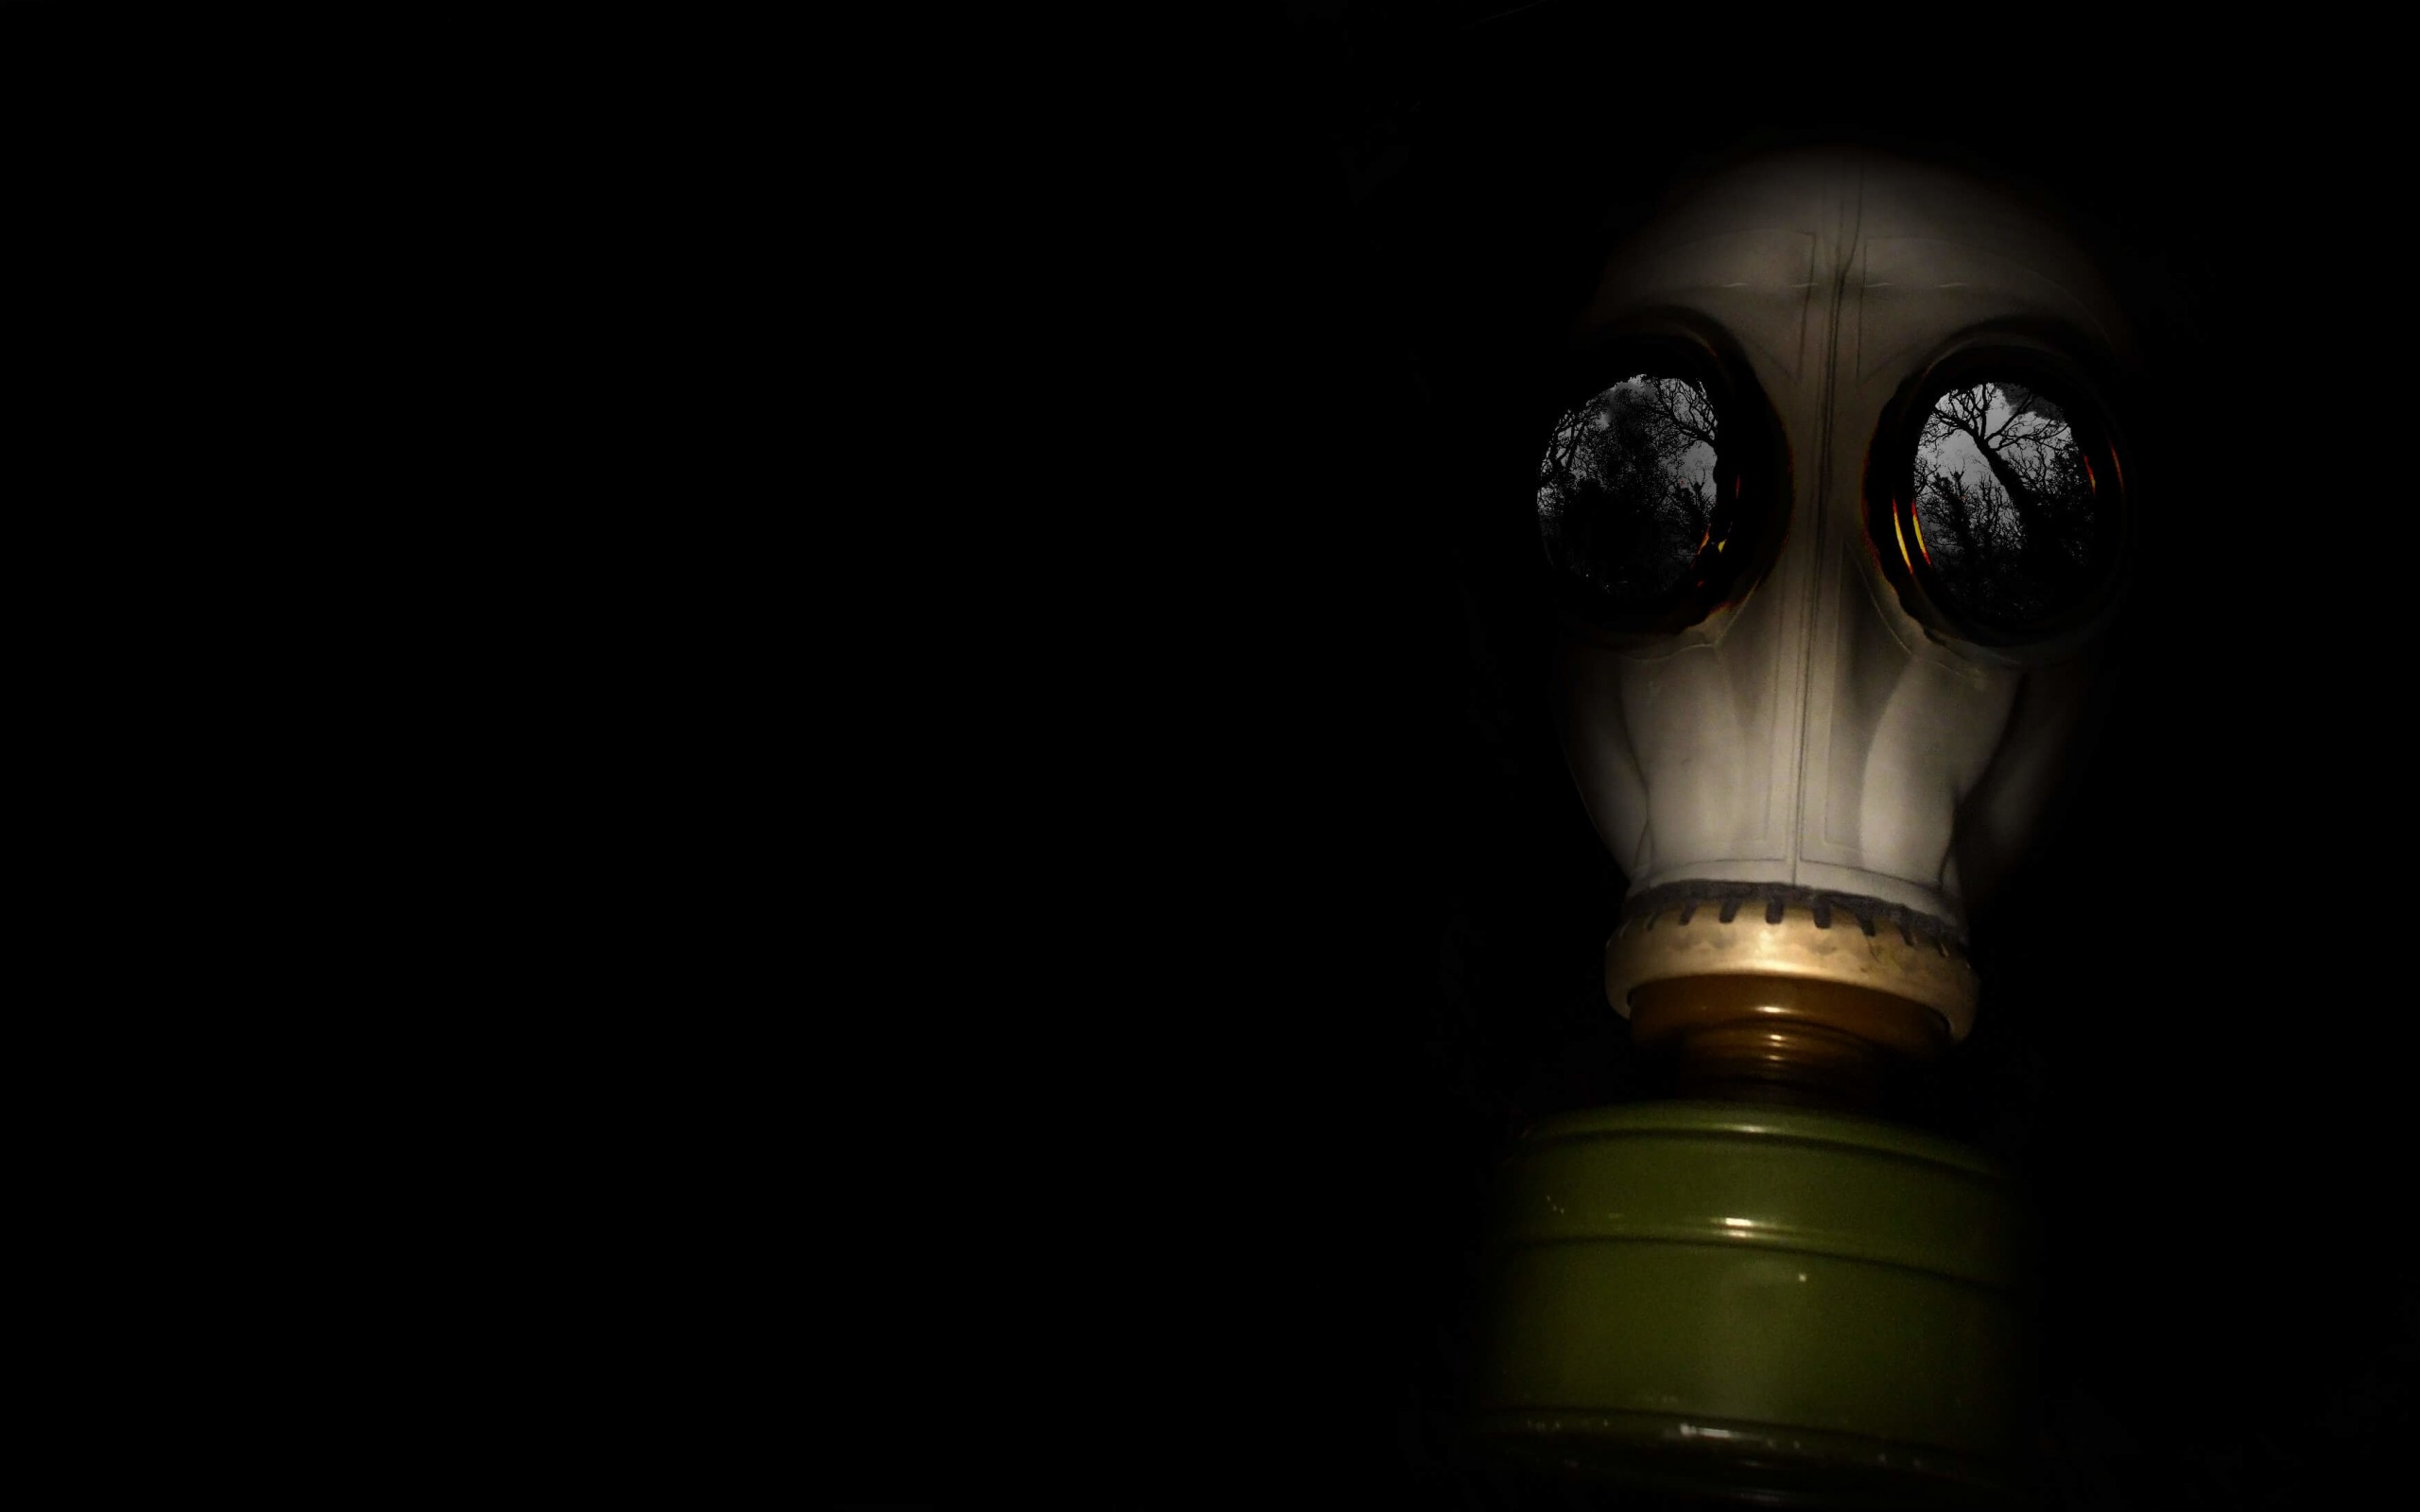 WWII Gas Mask Wallpaper for Desktop 2560x1600